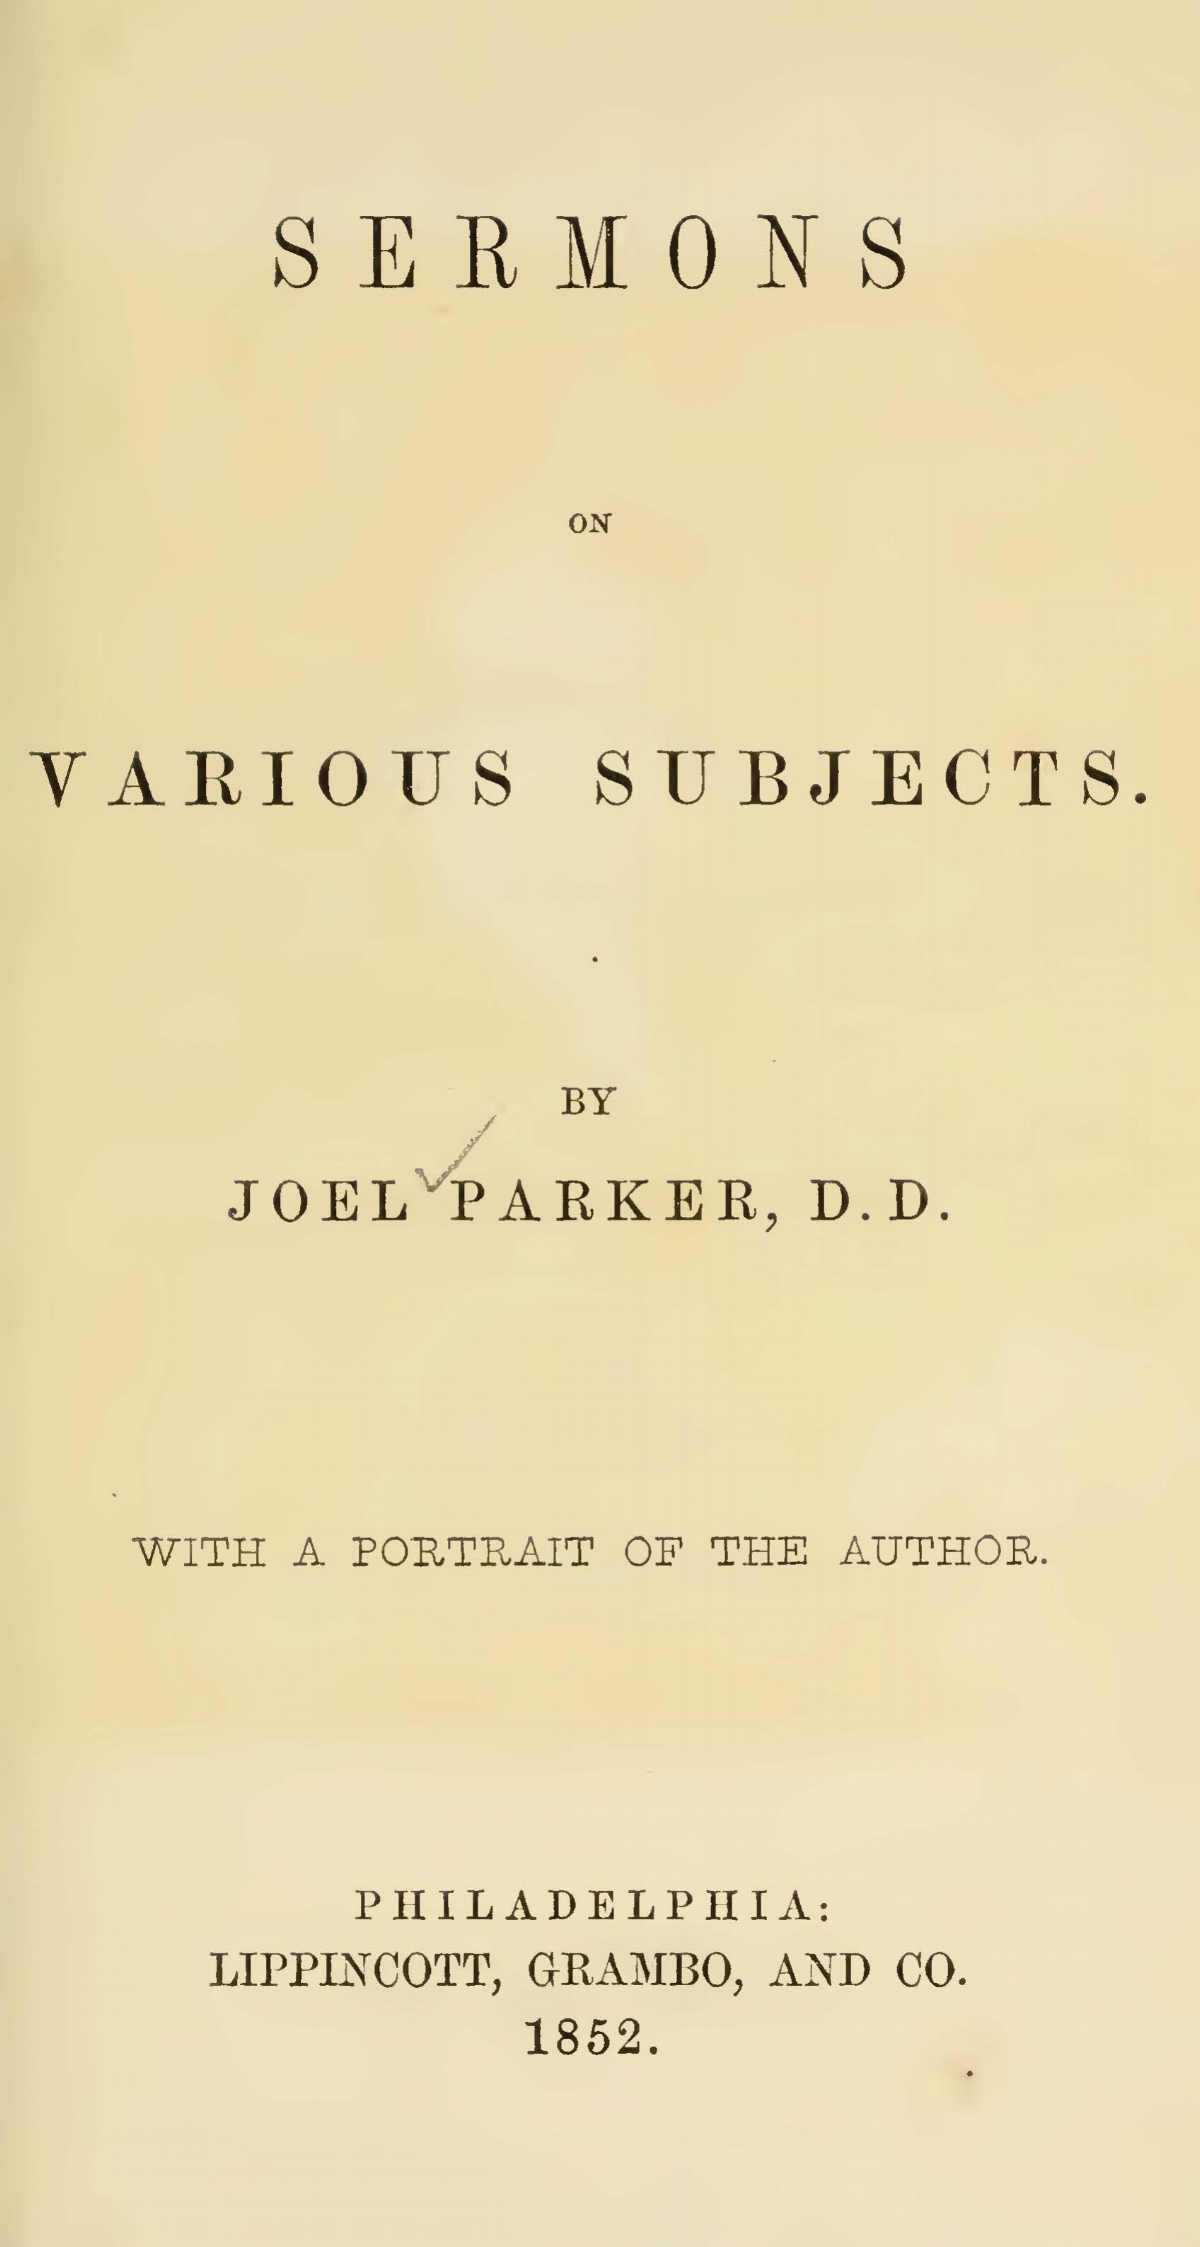 Parker, Joel, Sermons on Various Subjects Title Page.jpg